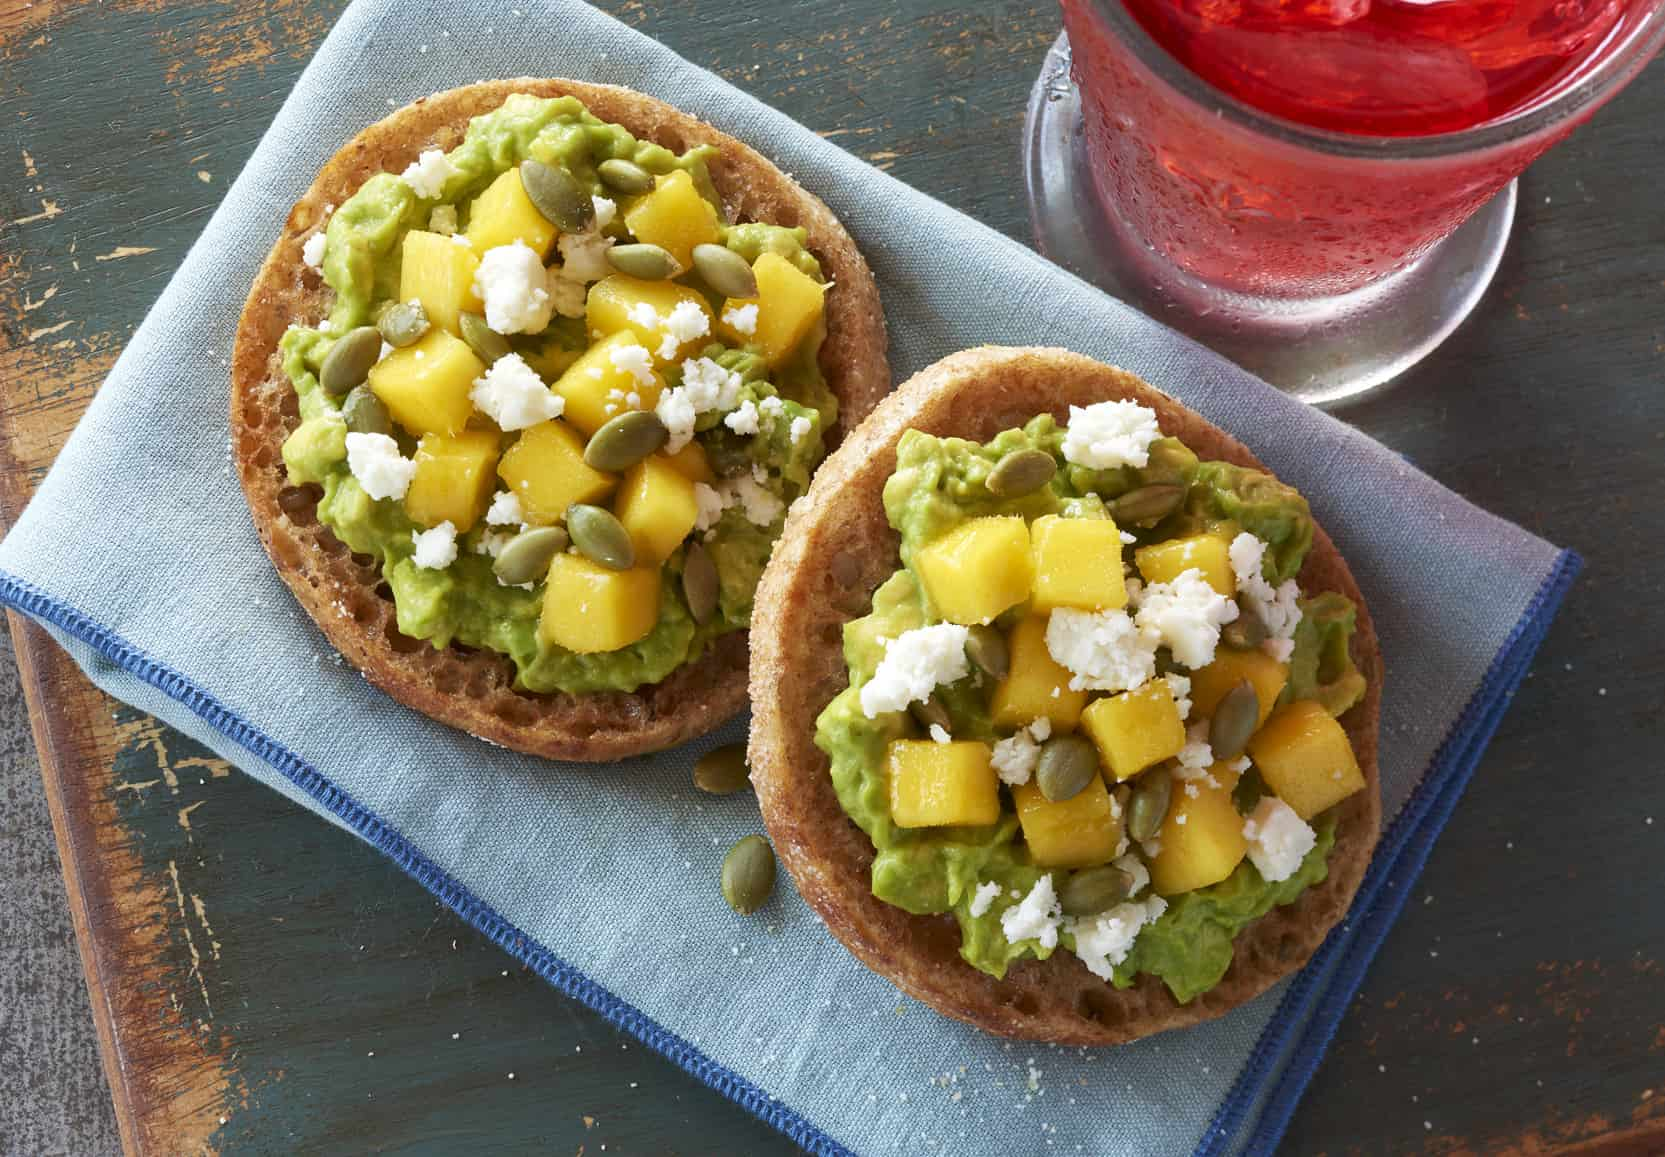 Mango Avocado English Muffin Toast is a tasty and healthy lunch or breakfast option!